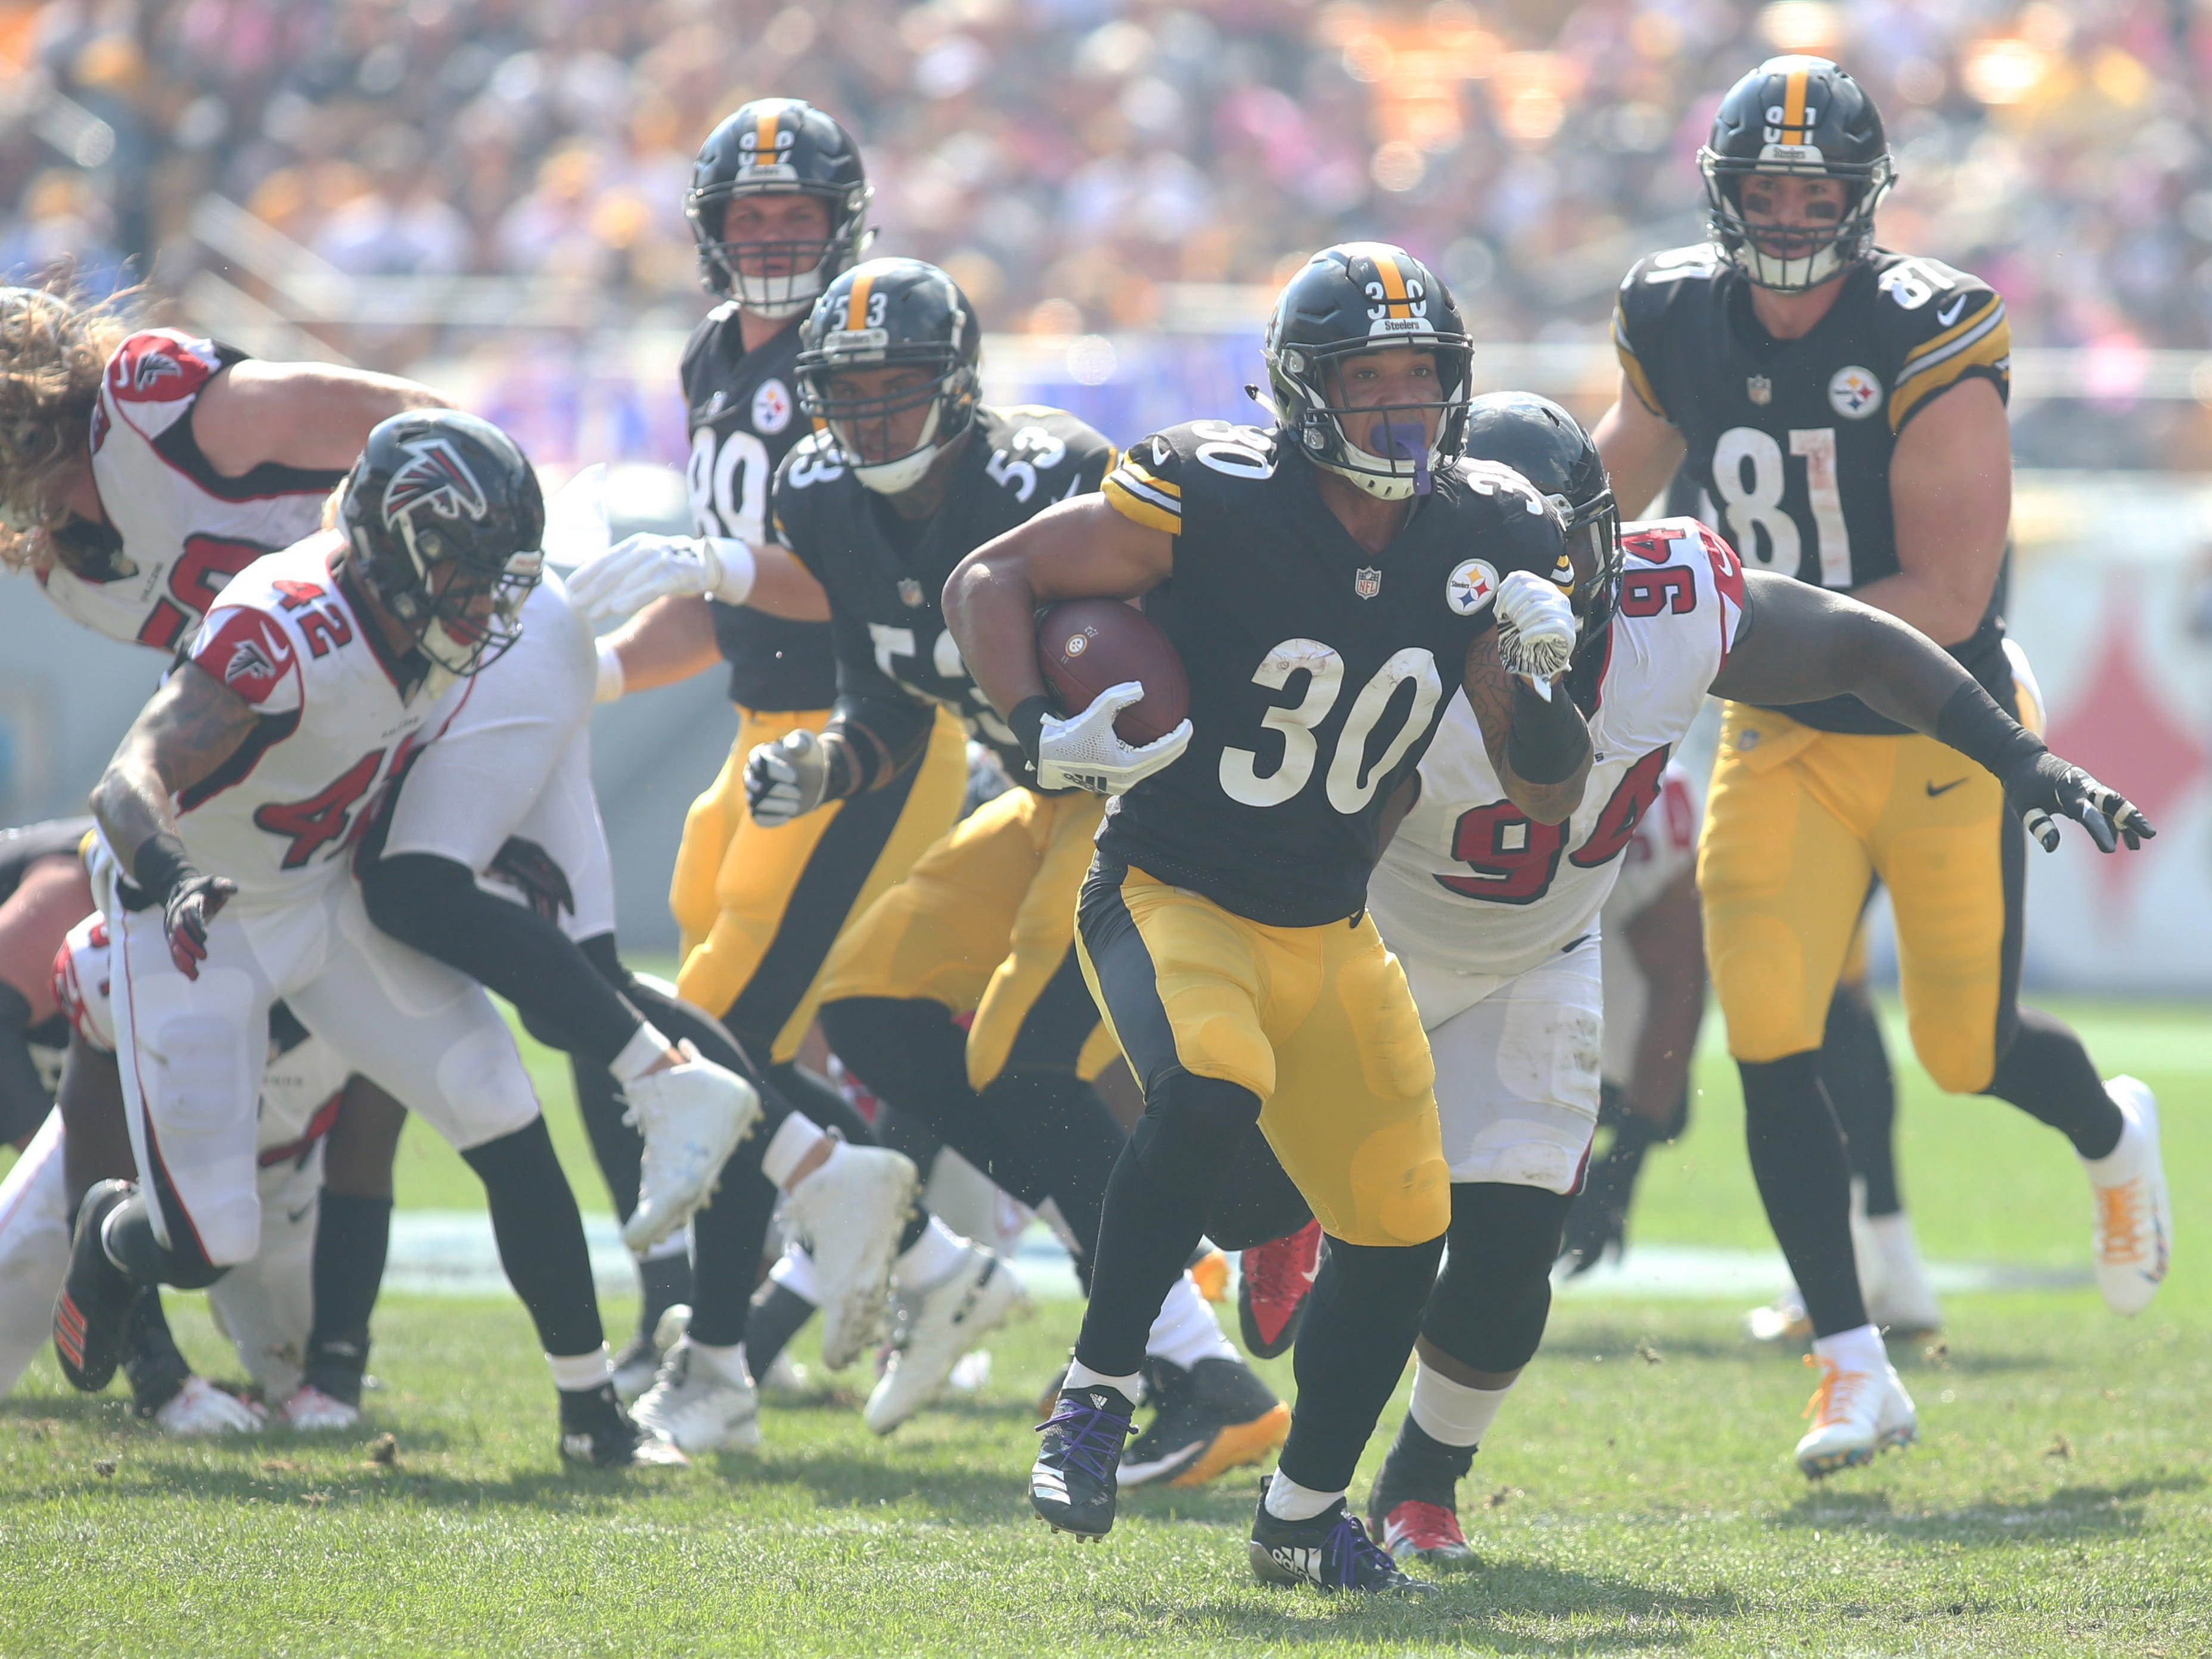 11. Steelers (16): Through five games last season, Le'Veon Bell had 515 yards from scrimmage. Through five games this year, James Conner has 581 yards.